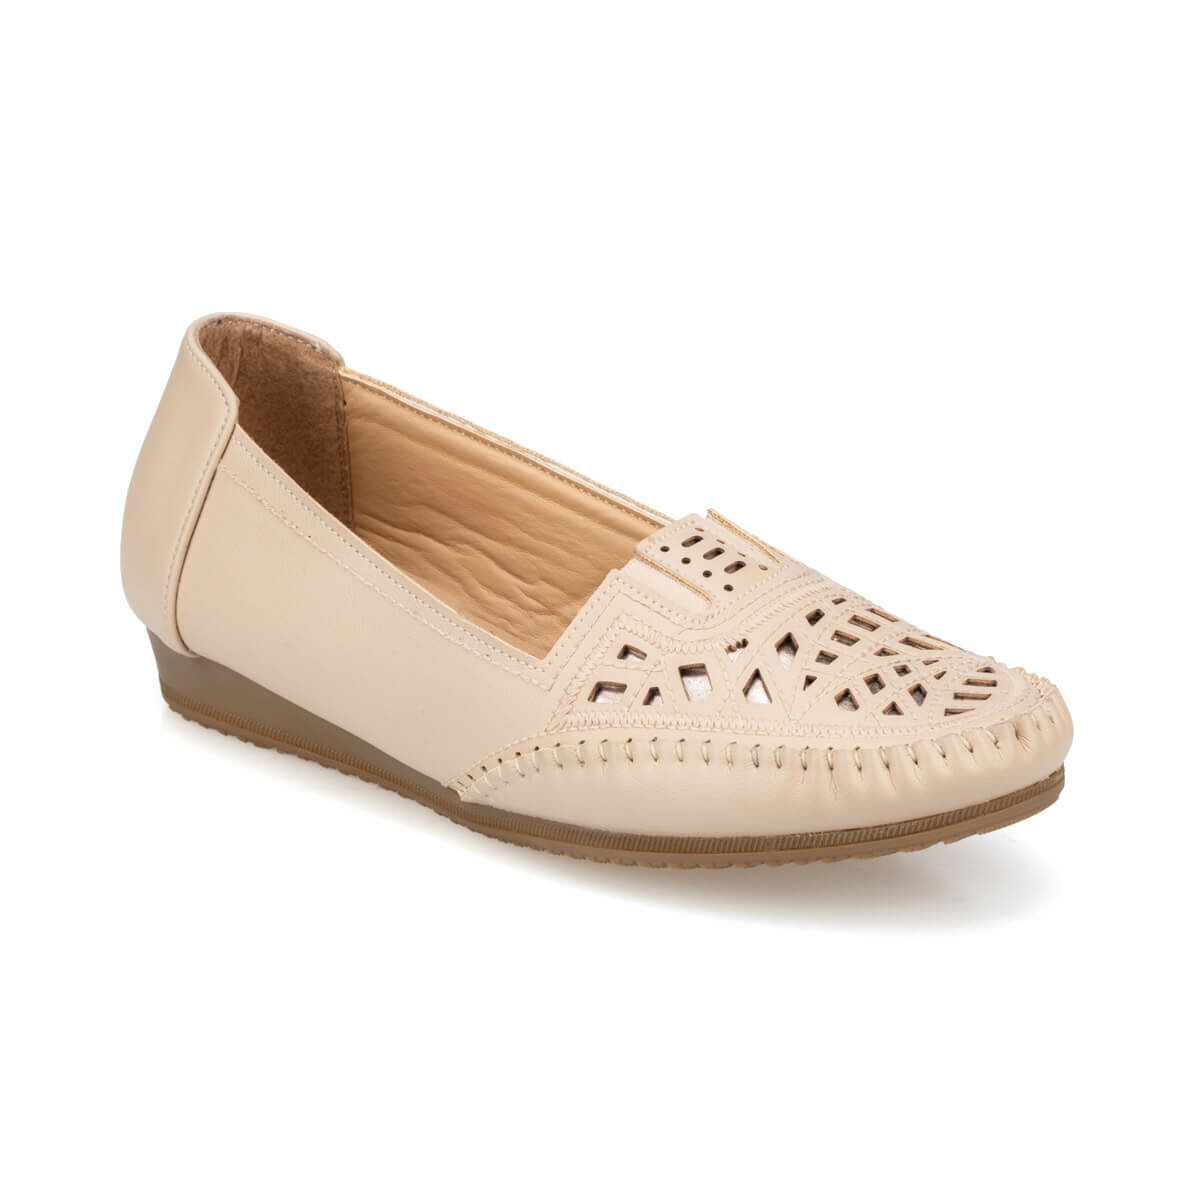 FLO 91. 158752.Z Beige Women 'S Shoes Polaris